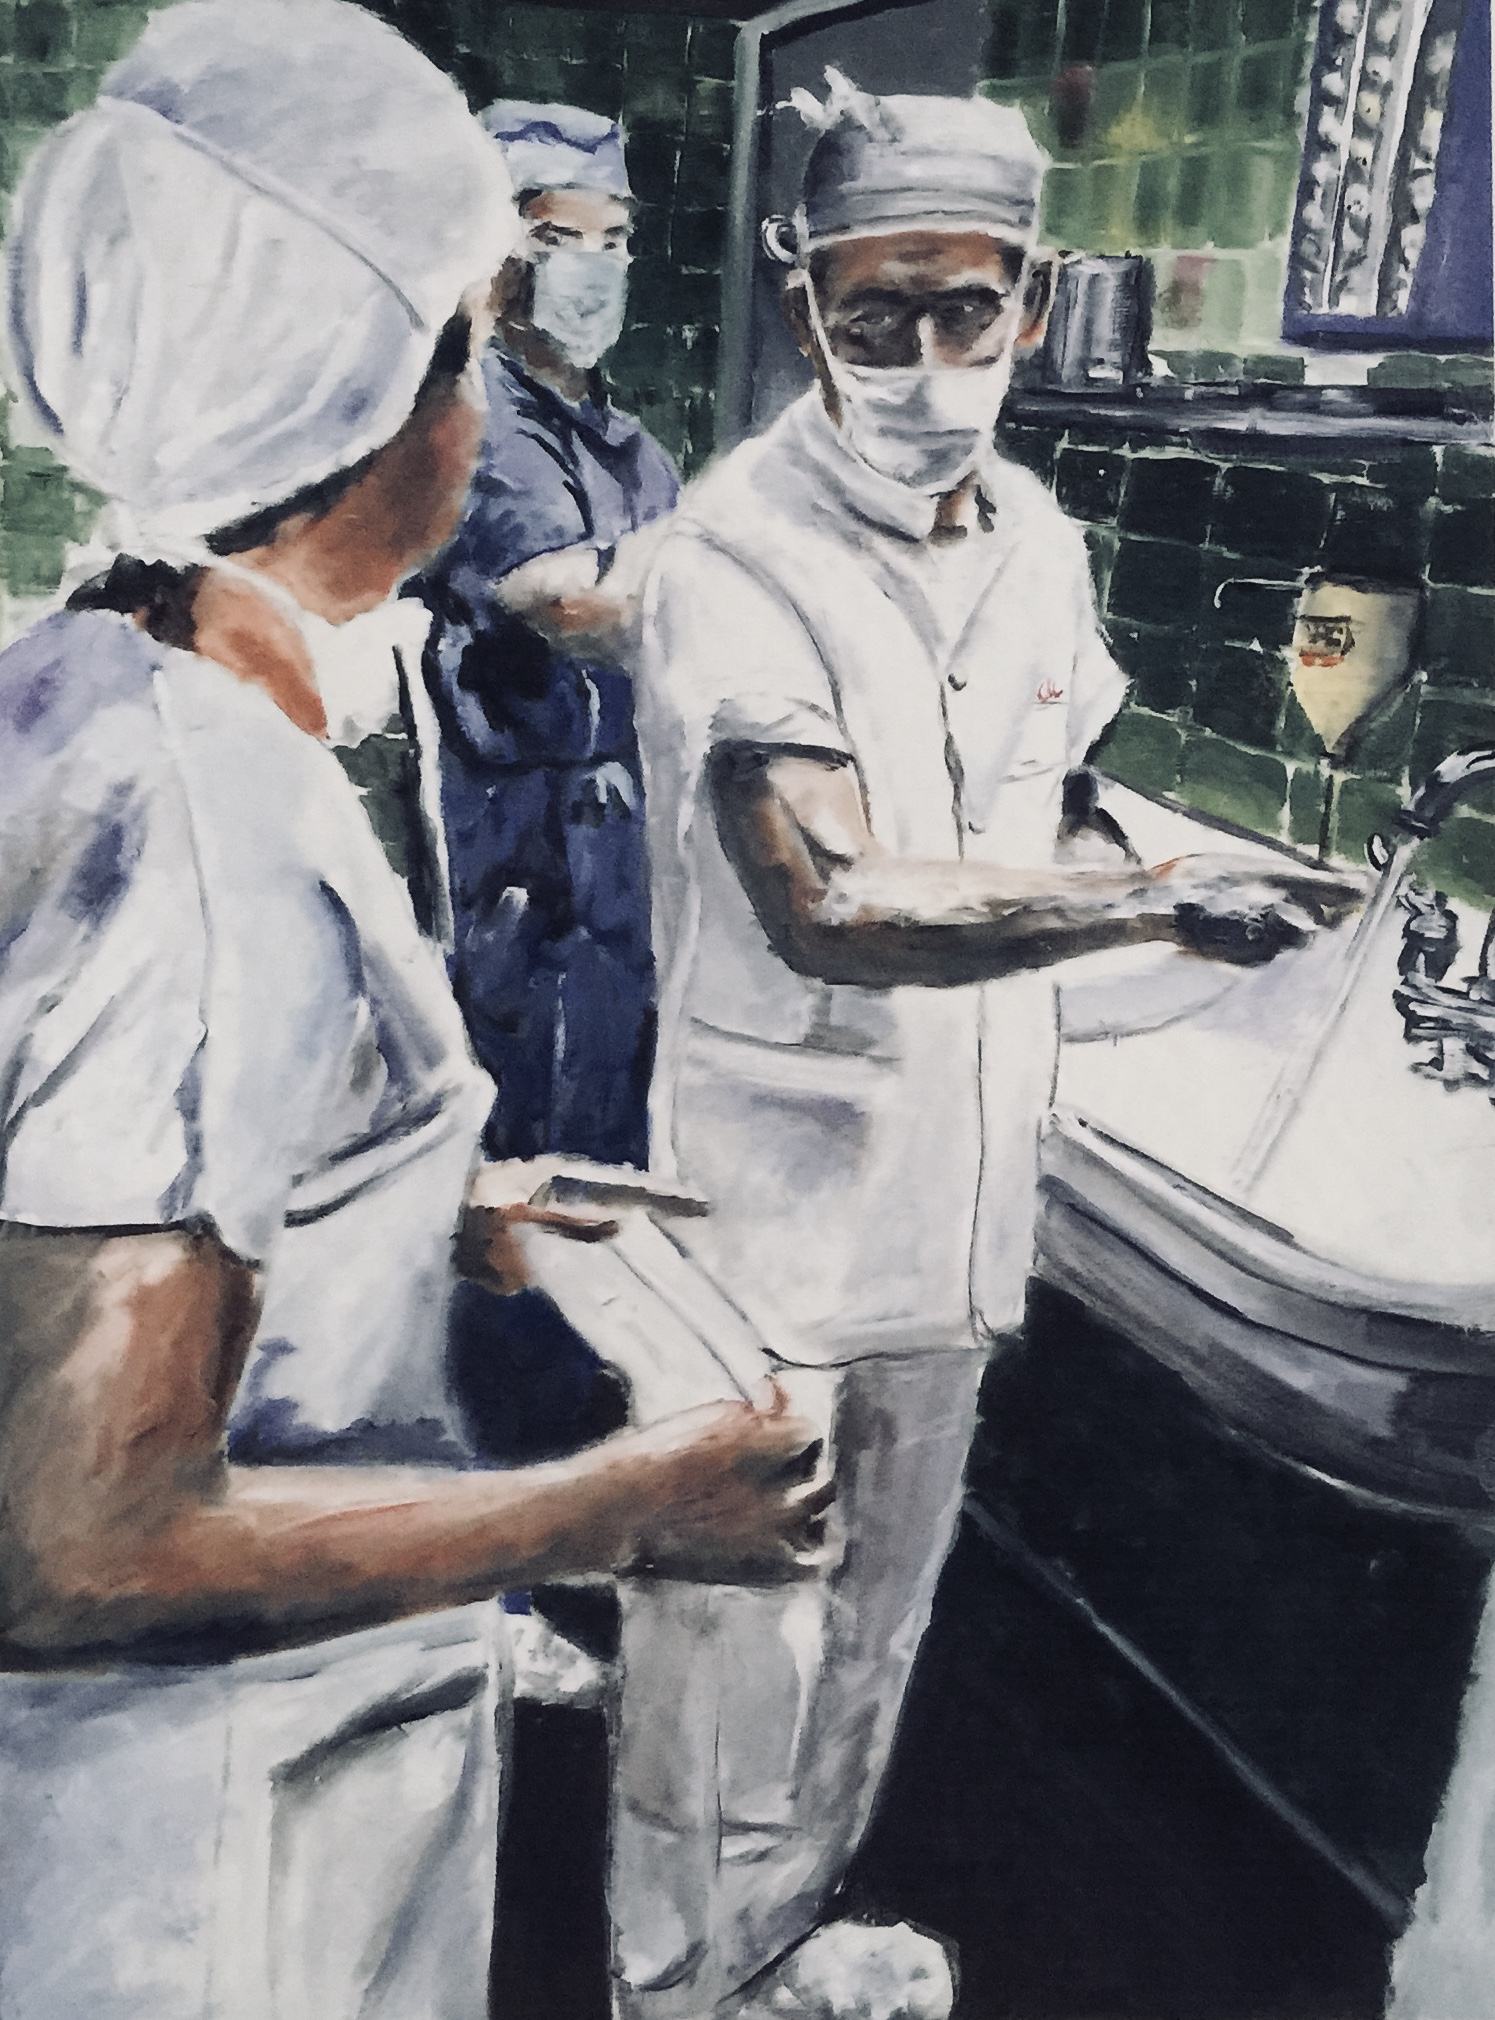 Scrubbing Hands   -  click to view in detail